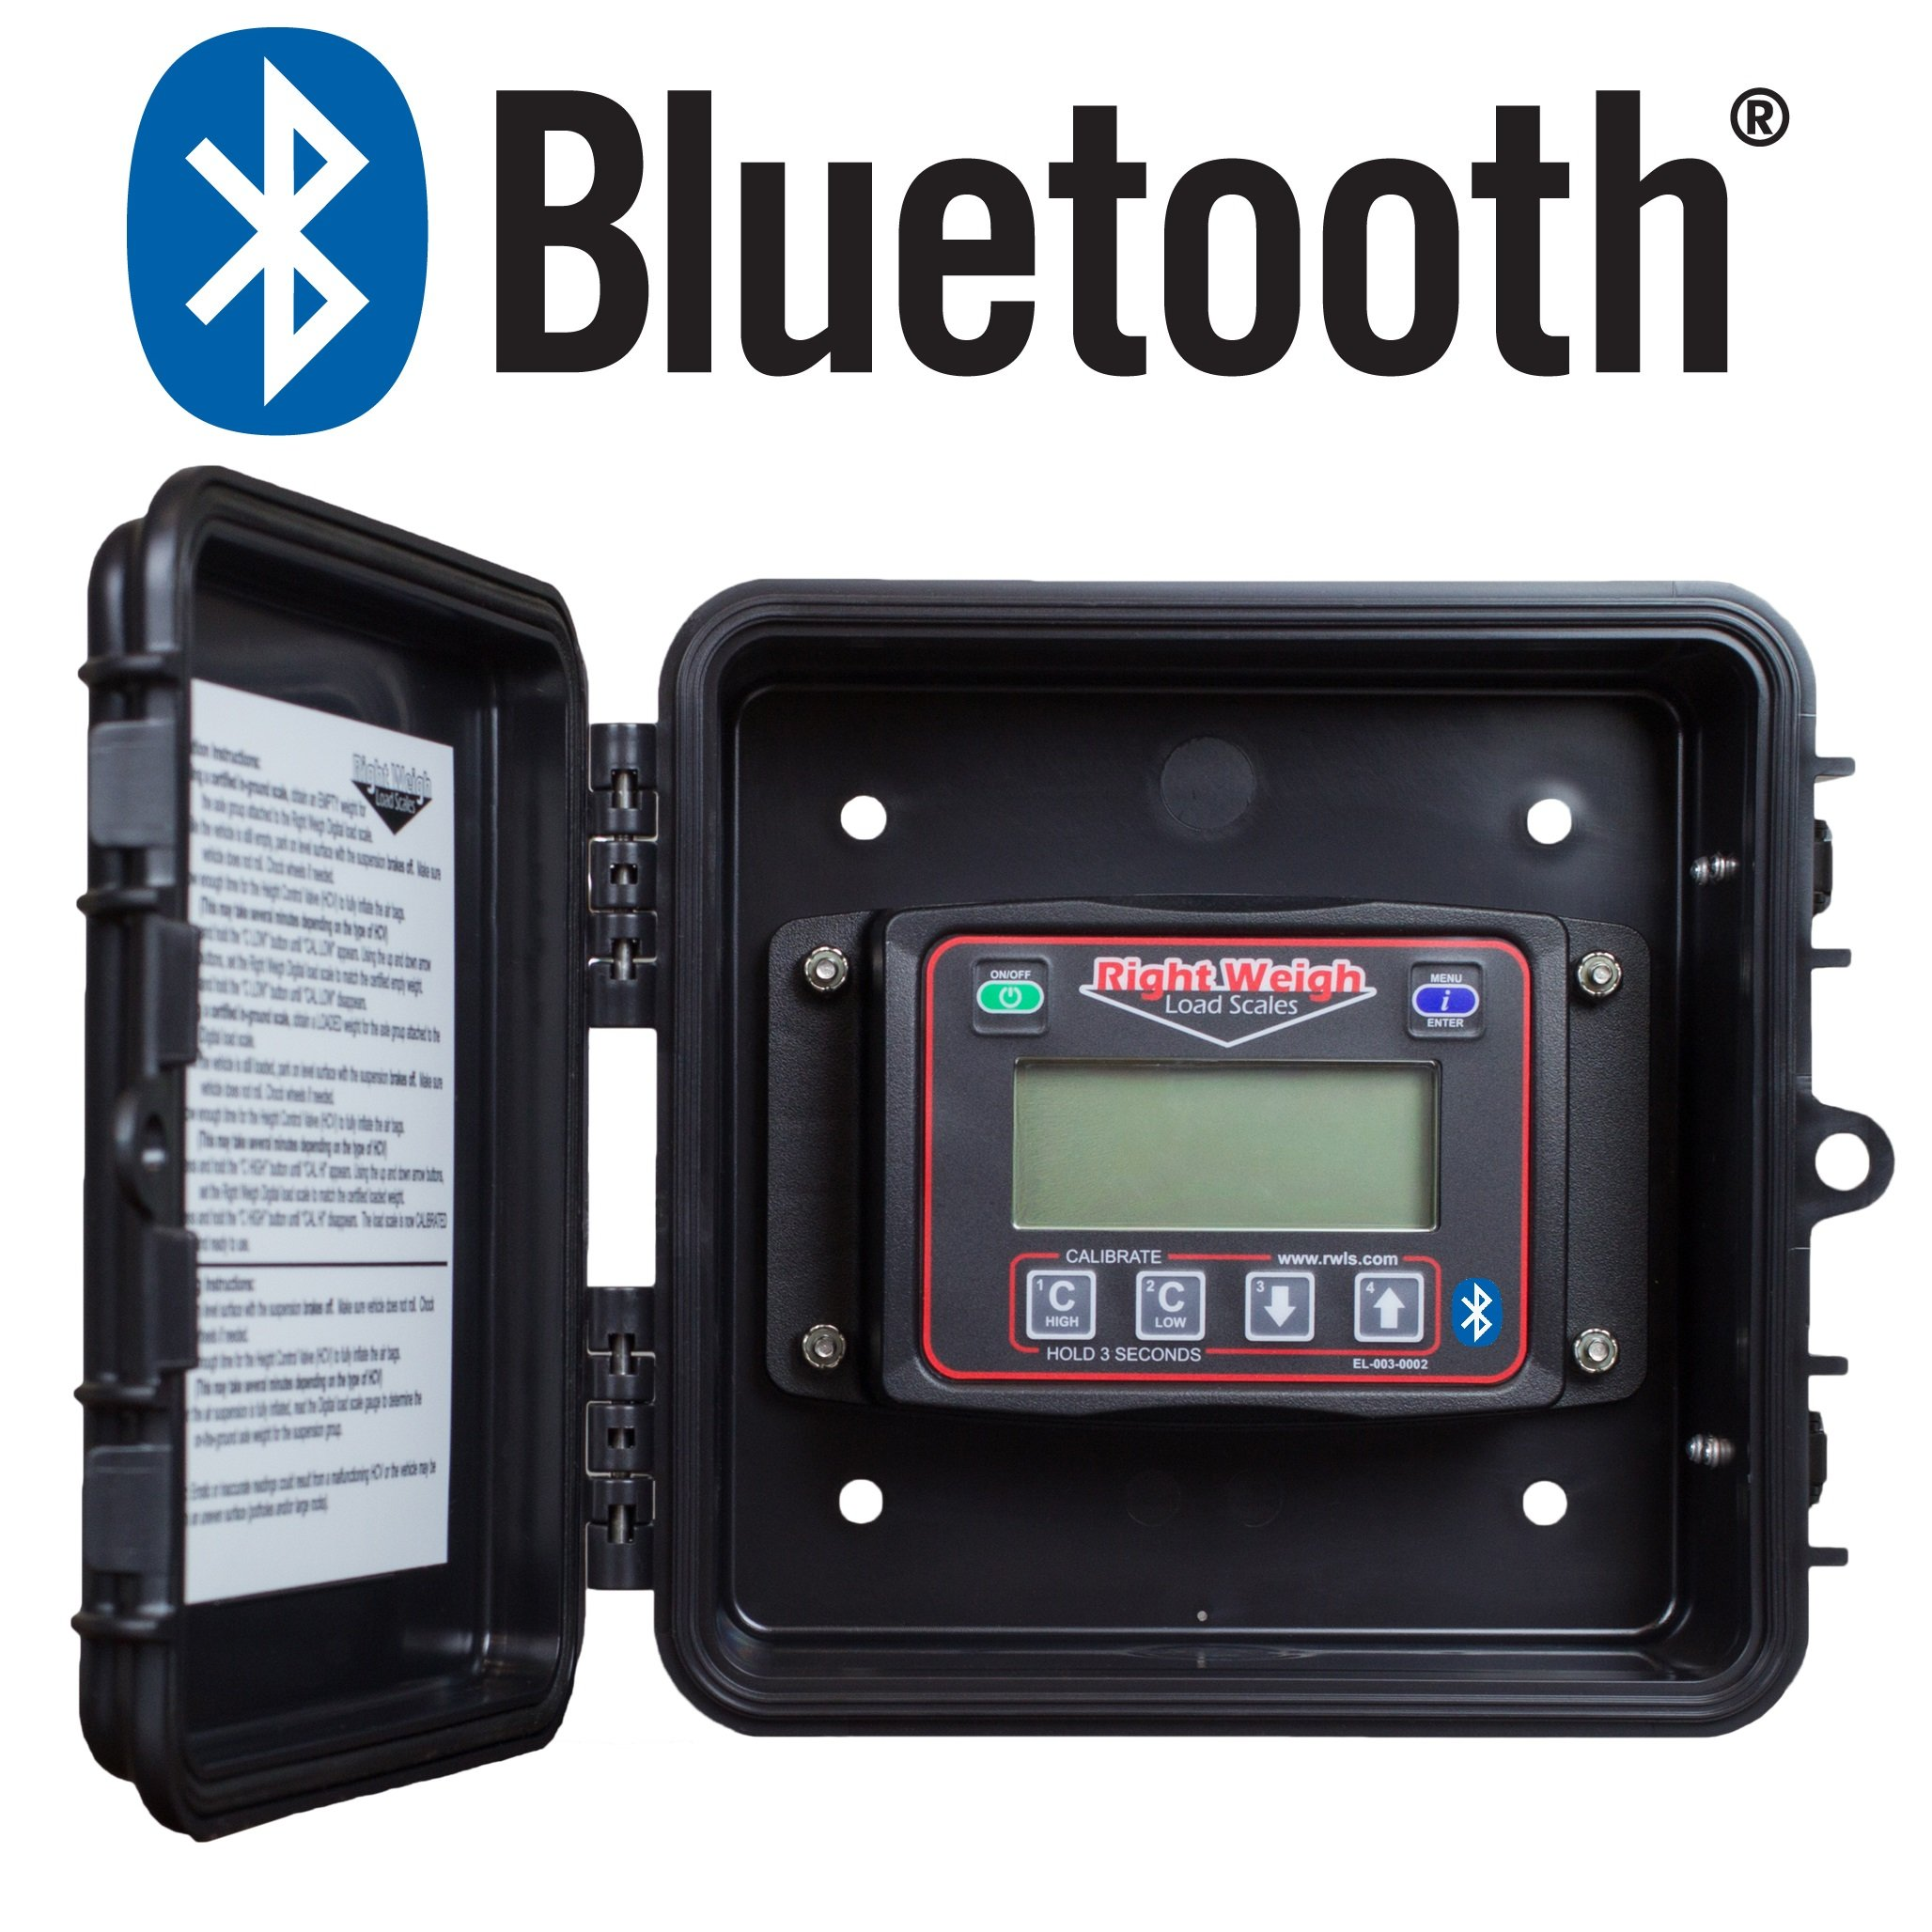 Bluetooth-Enabled Right Weigh 201-EBT-01B Exterior Digital Axle Load Scale - for Single Height Control Valve Air Suspensions by Right Weigh Load Scales